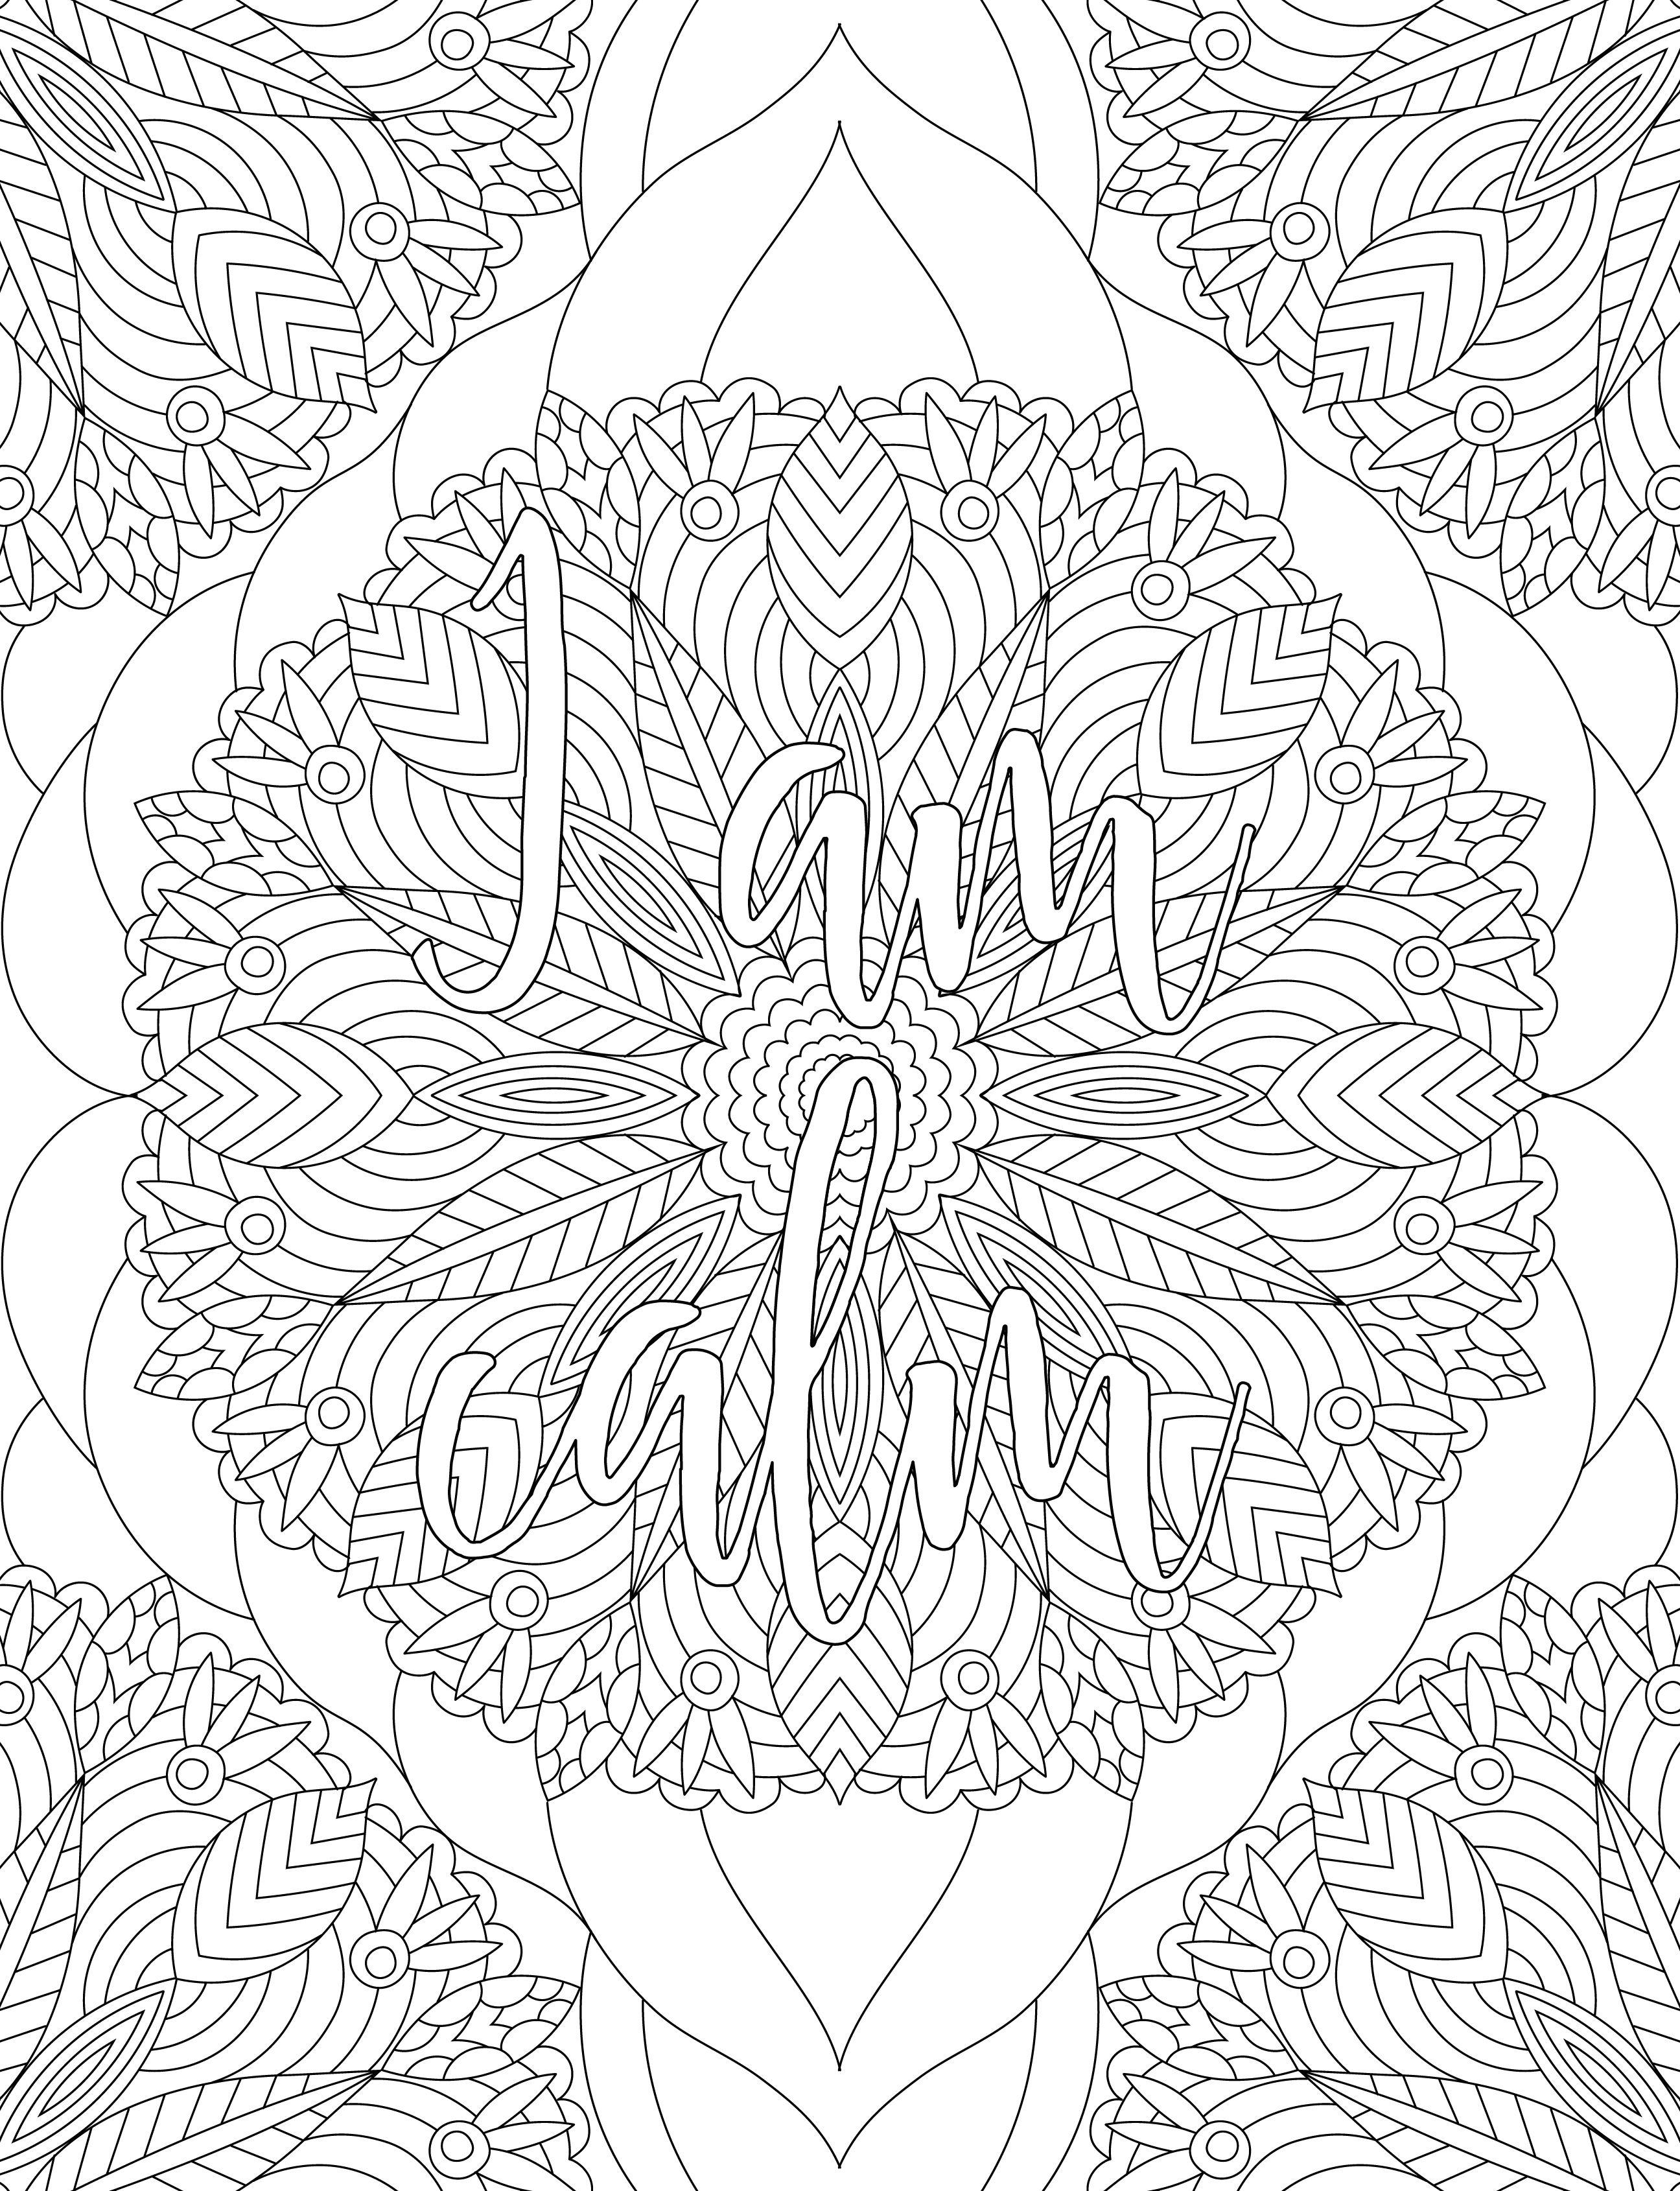 Affirmation Adult Coloring Book With Images